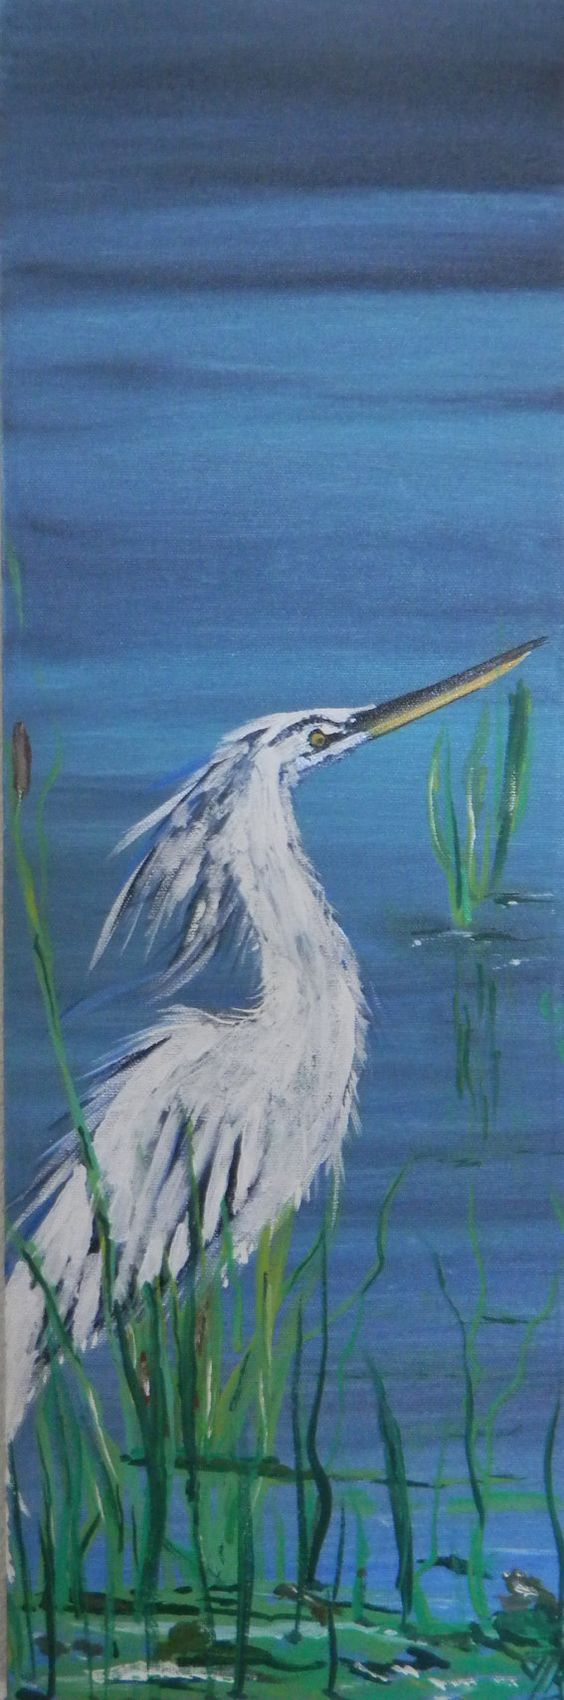 """Blue Heron Acrylic Painting 8 x 24 Canvas Nature by Codysquilts $75.00 Get 10% OFF with Coupon """"TAKE10"""""""